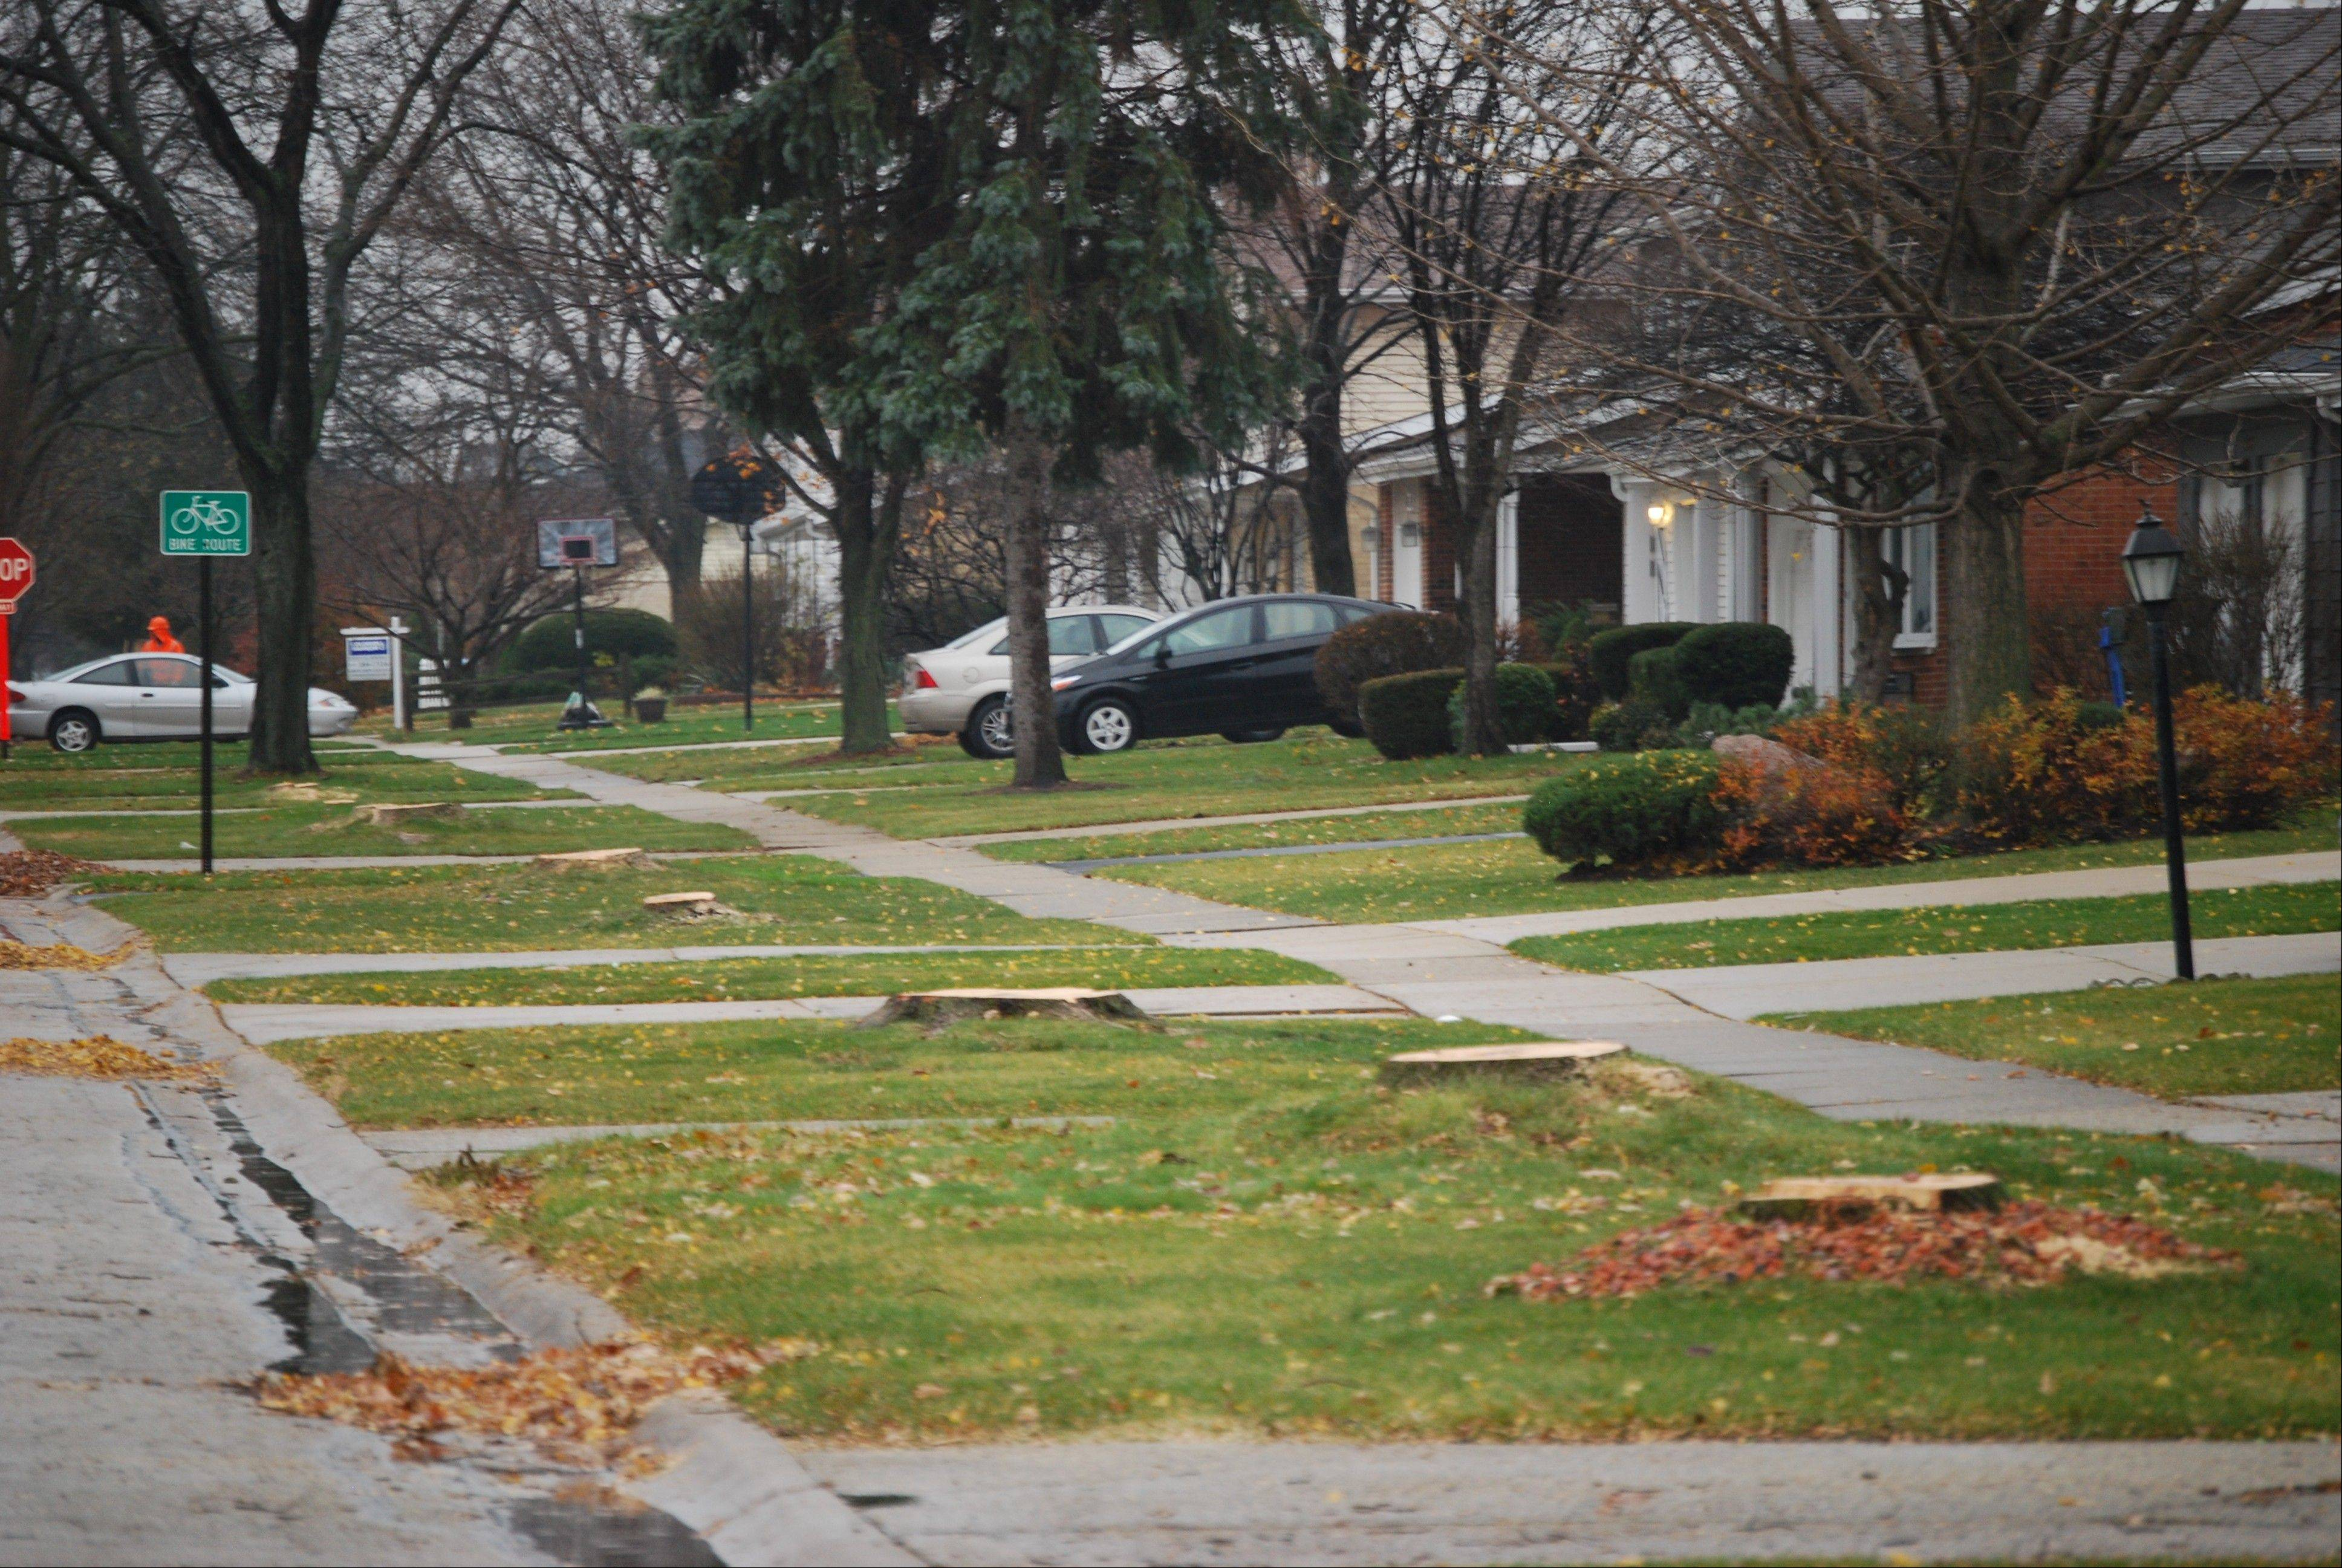 Though it's too late for the ash trees that once lined the 1800 block of Willow Lane in Mount Prospect, village officials this week approved a measure that would allow residents to try treating trees infested by the emerald ash borer as a last-ditch effort to save them.